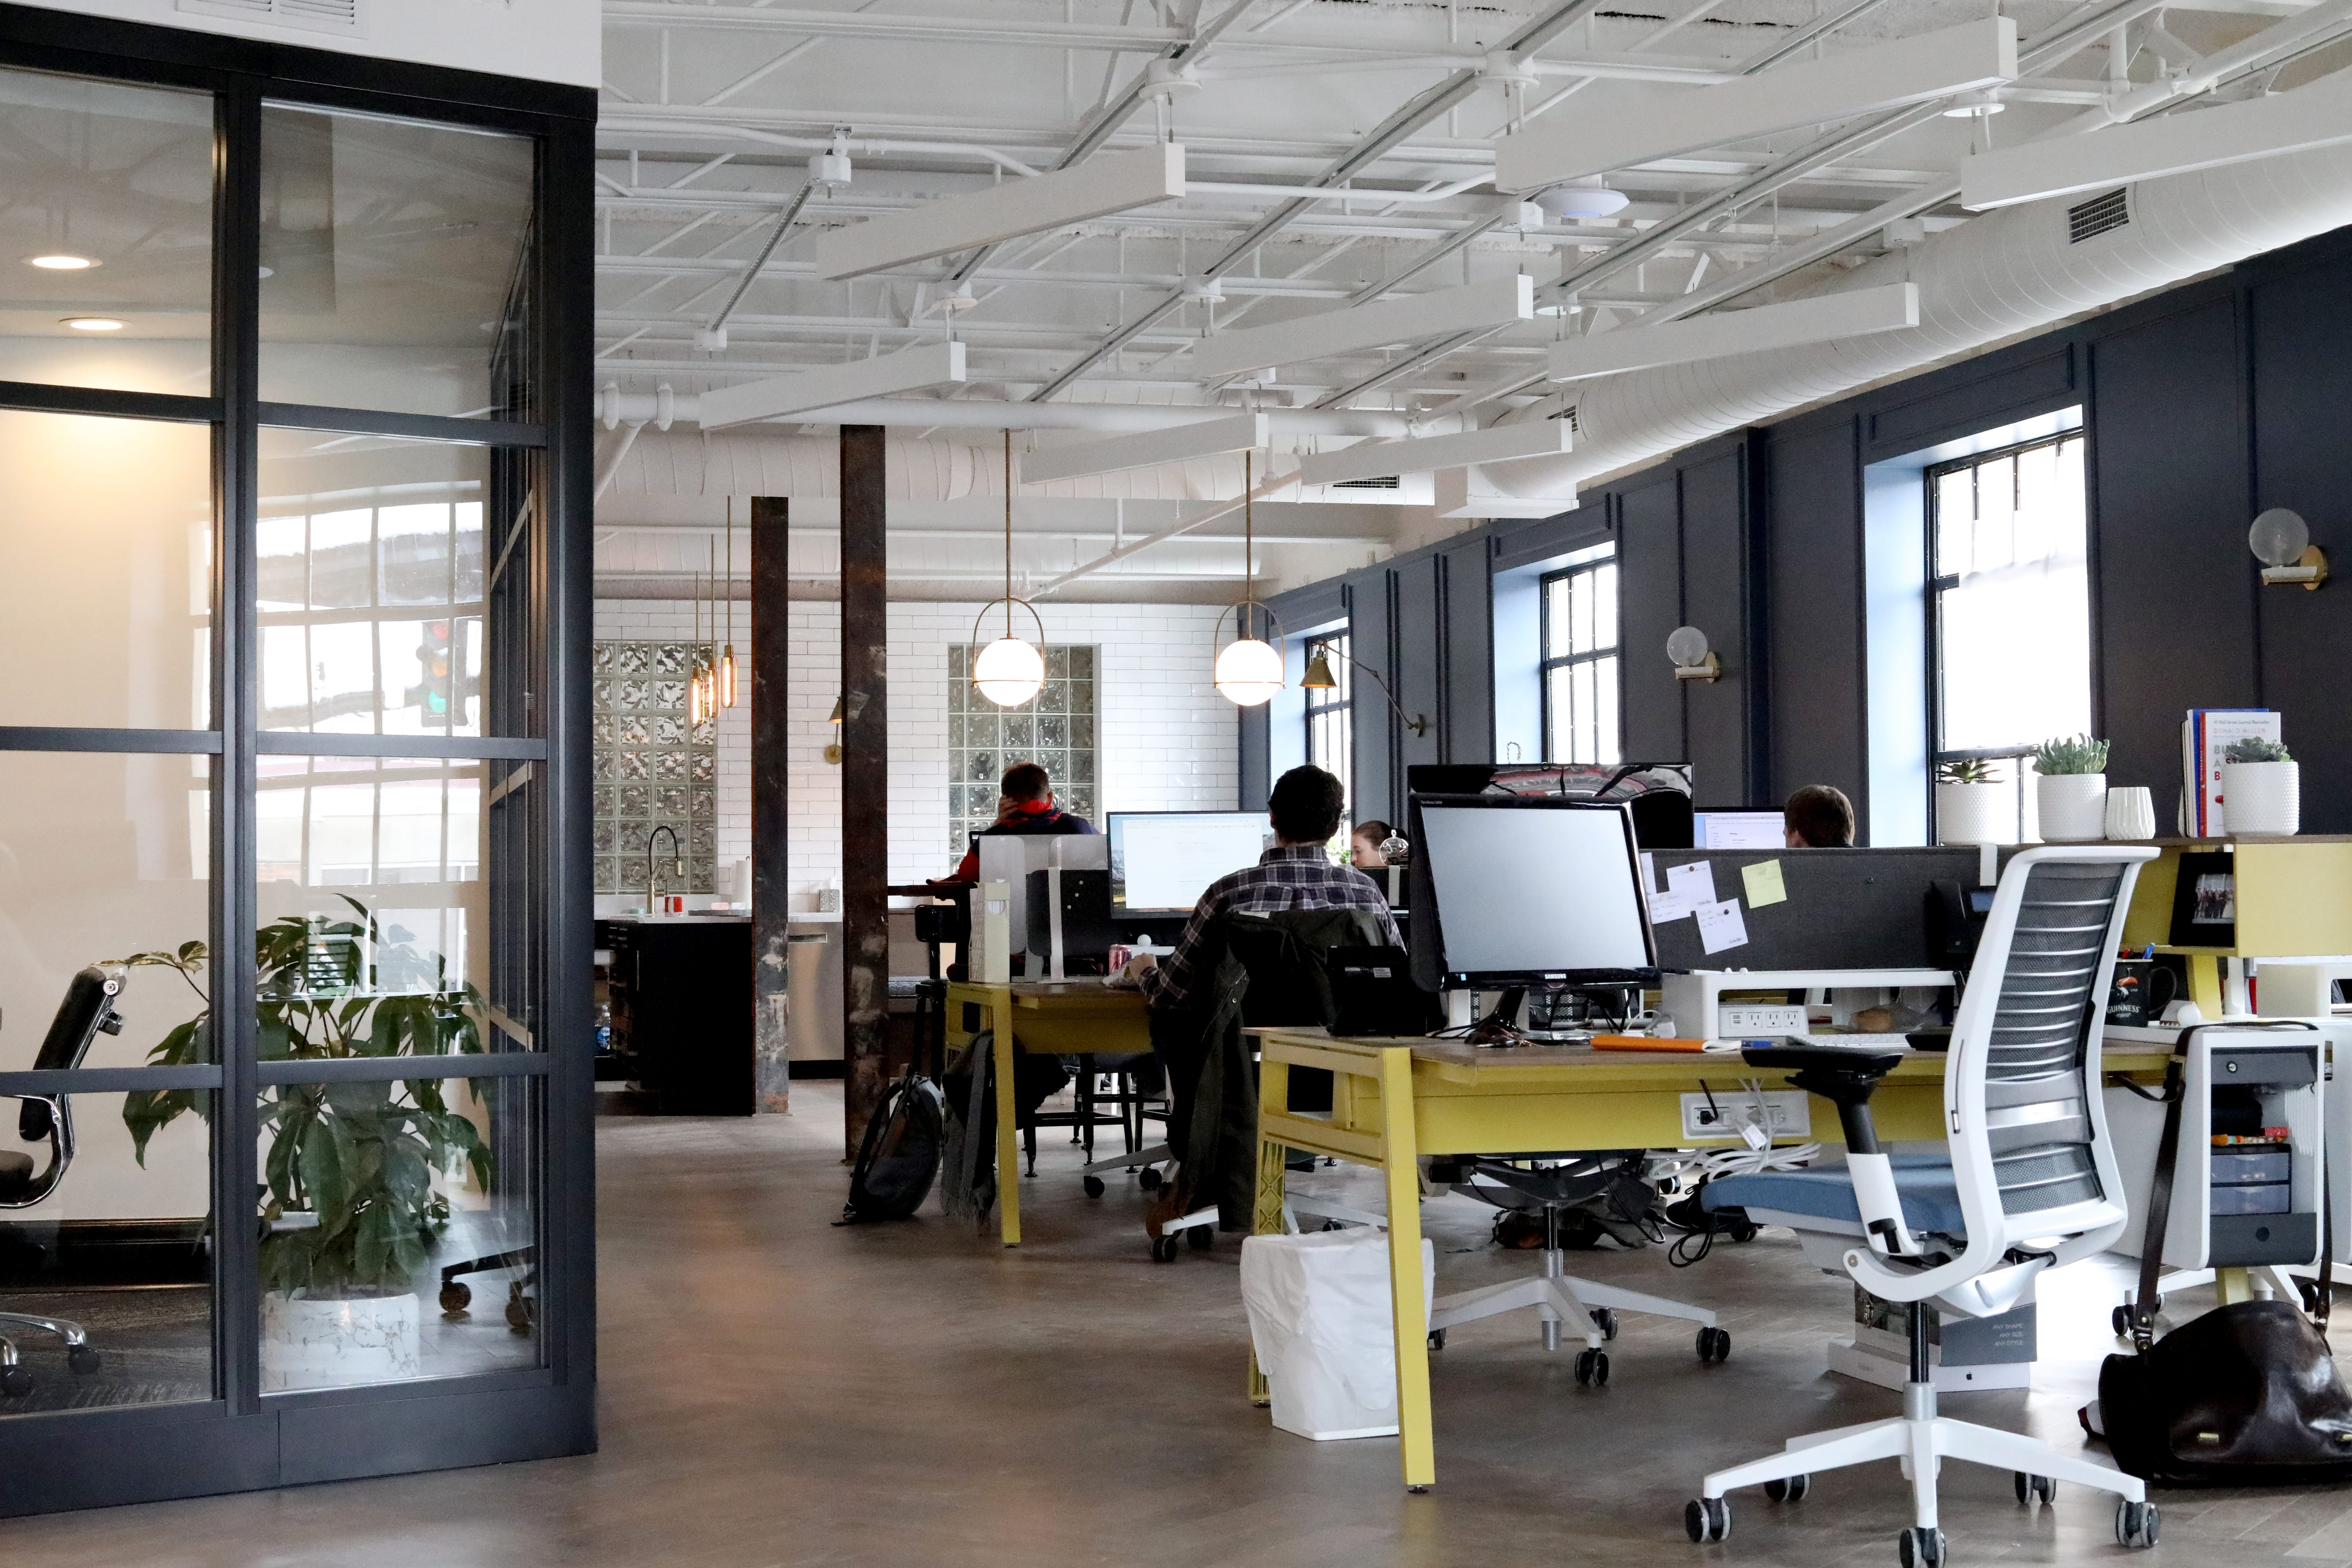 Open workspace with people sitting at desks; image by Venveo, via Unsplash.com.